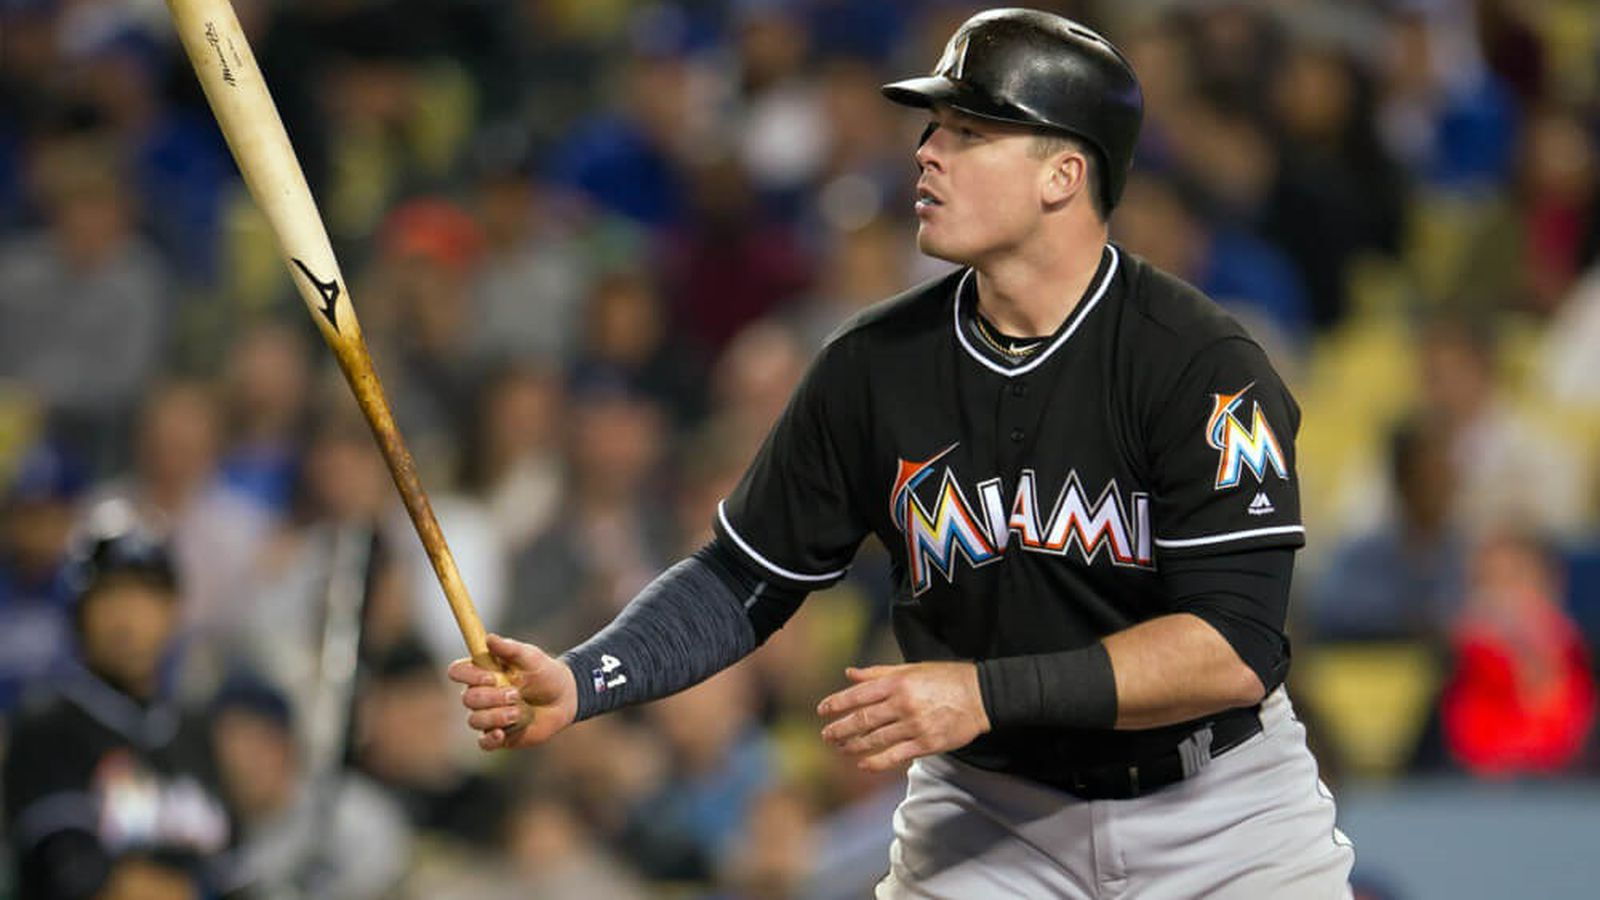 Giancarlo Stanton Stats 2017 >> Justin Bour to join Giancarlo Stanton in Home Run Derby - Fish Stripes